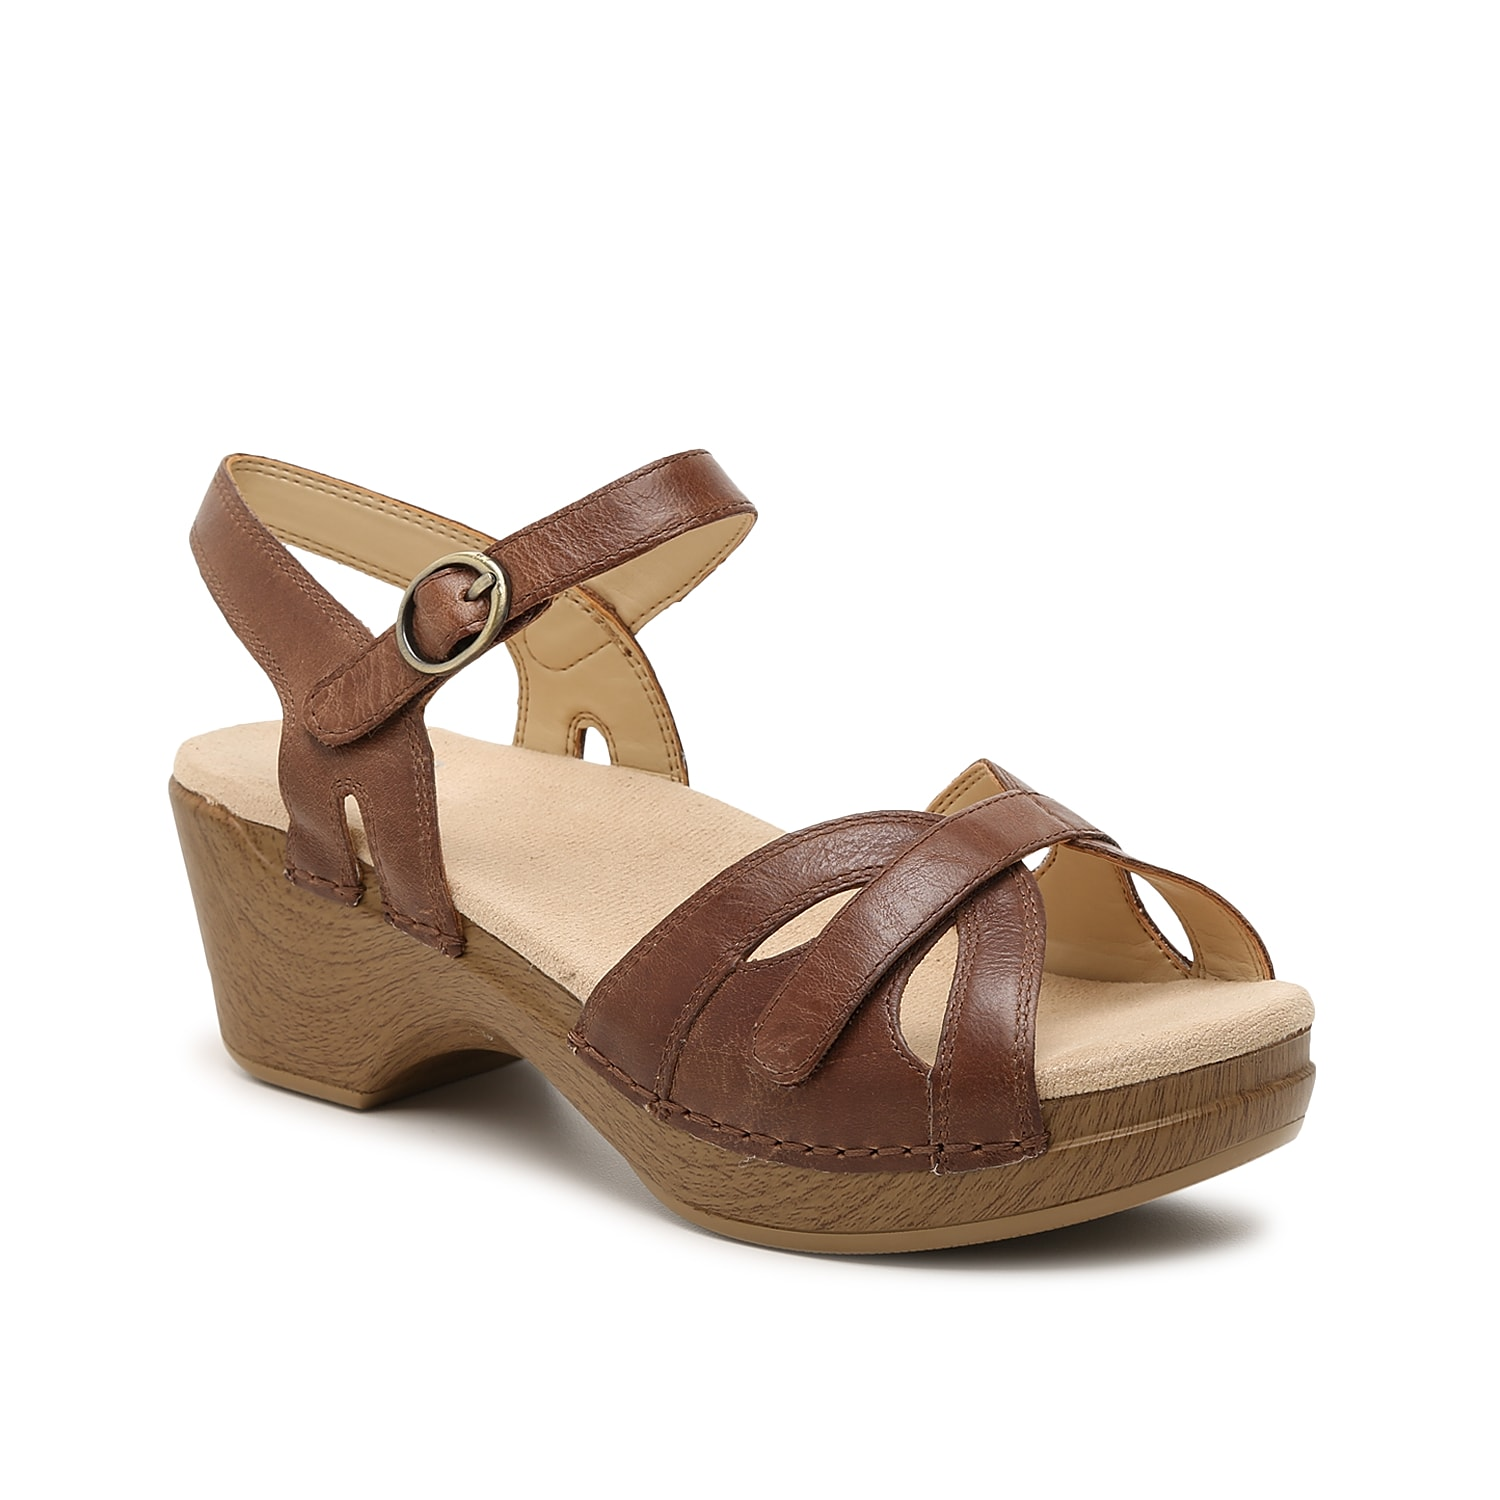 The Season platform sandal from Dansko will upgrade your warm weather look. Fisherman-style straps in genuine leather add lasting quality while a faux wood finish on the heel looks traditional and timeless.